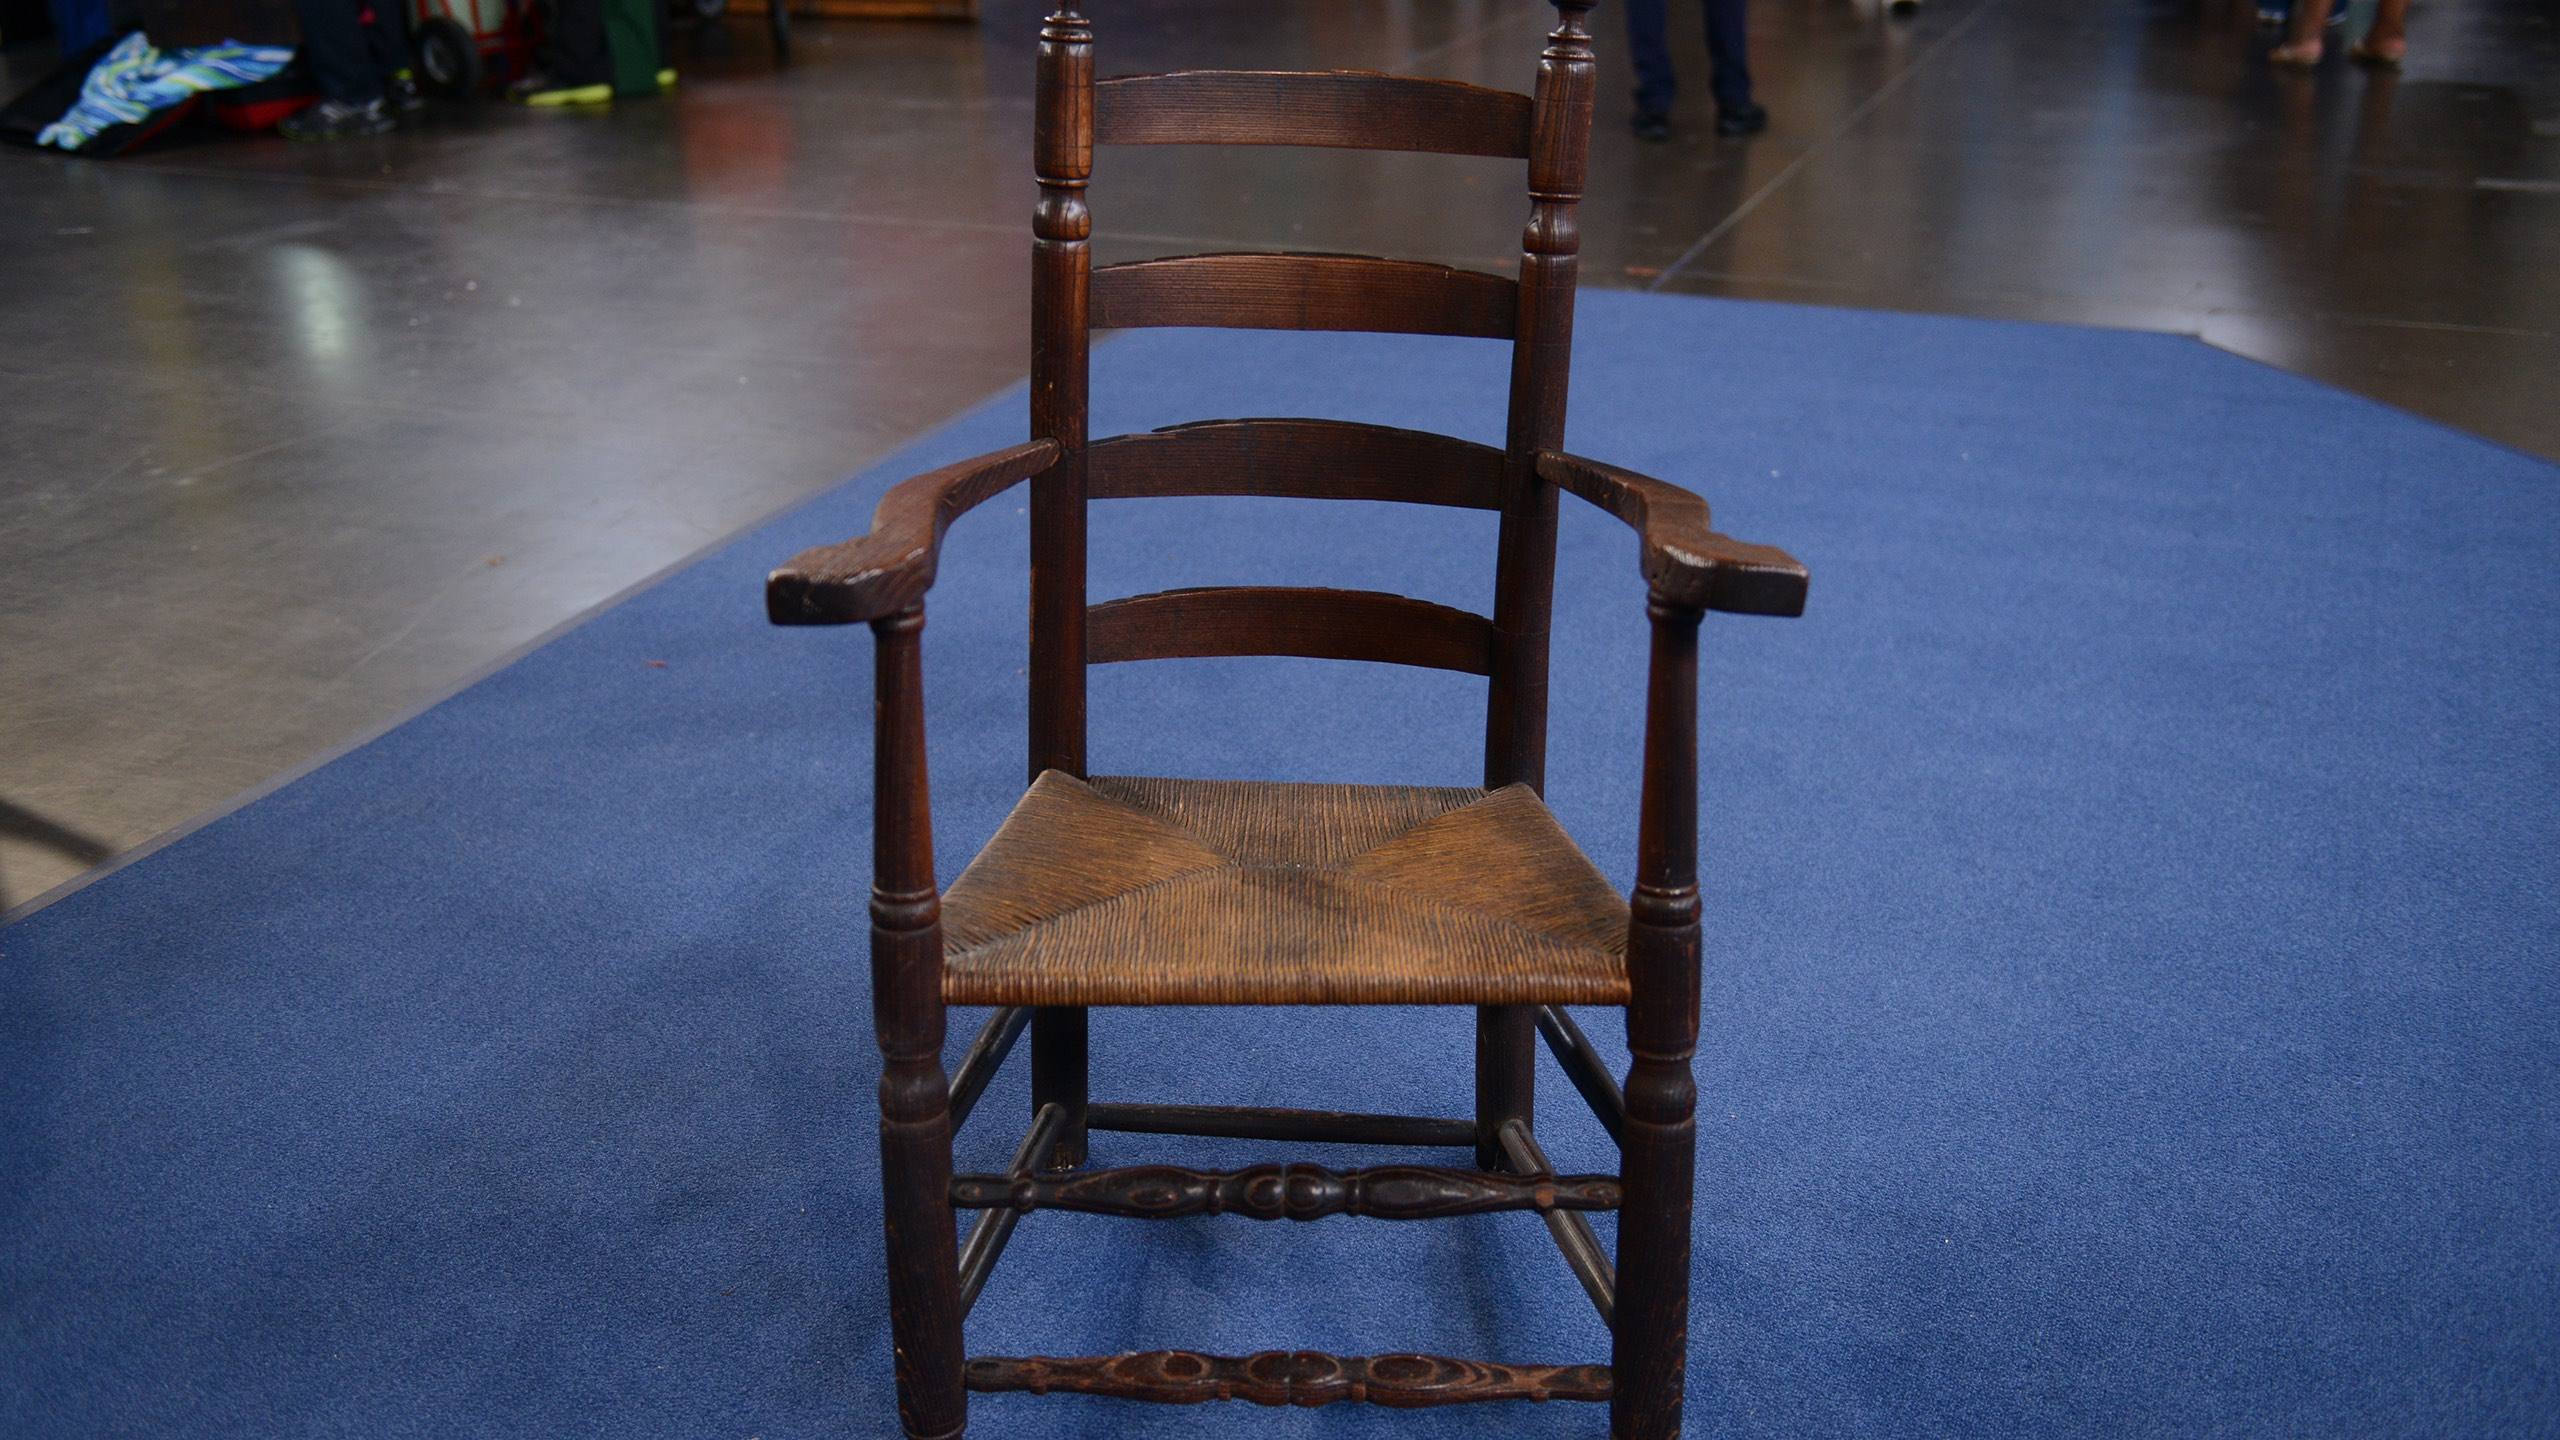 http://www-tc.pbs.org/prod-media/antiques-roadshow/article/images/Great-chair-lede.jpg